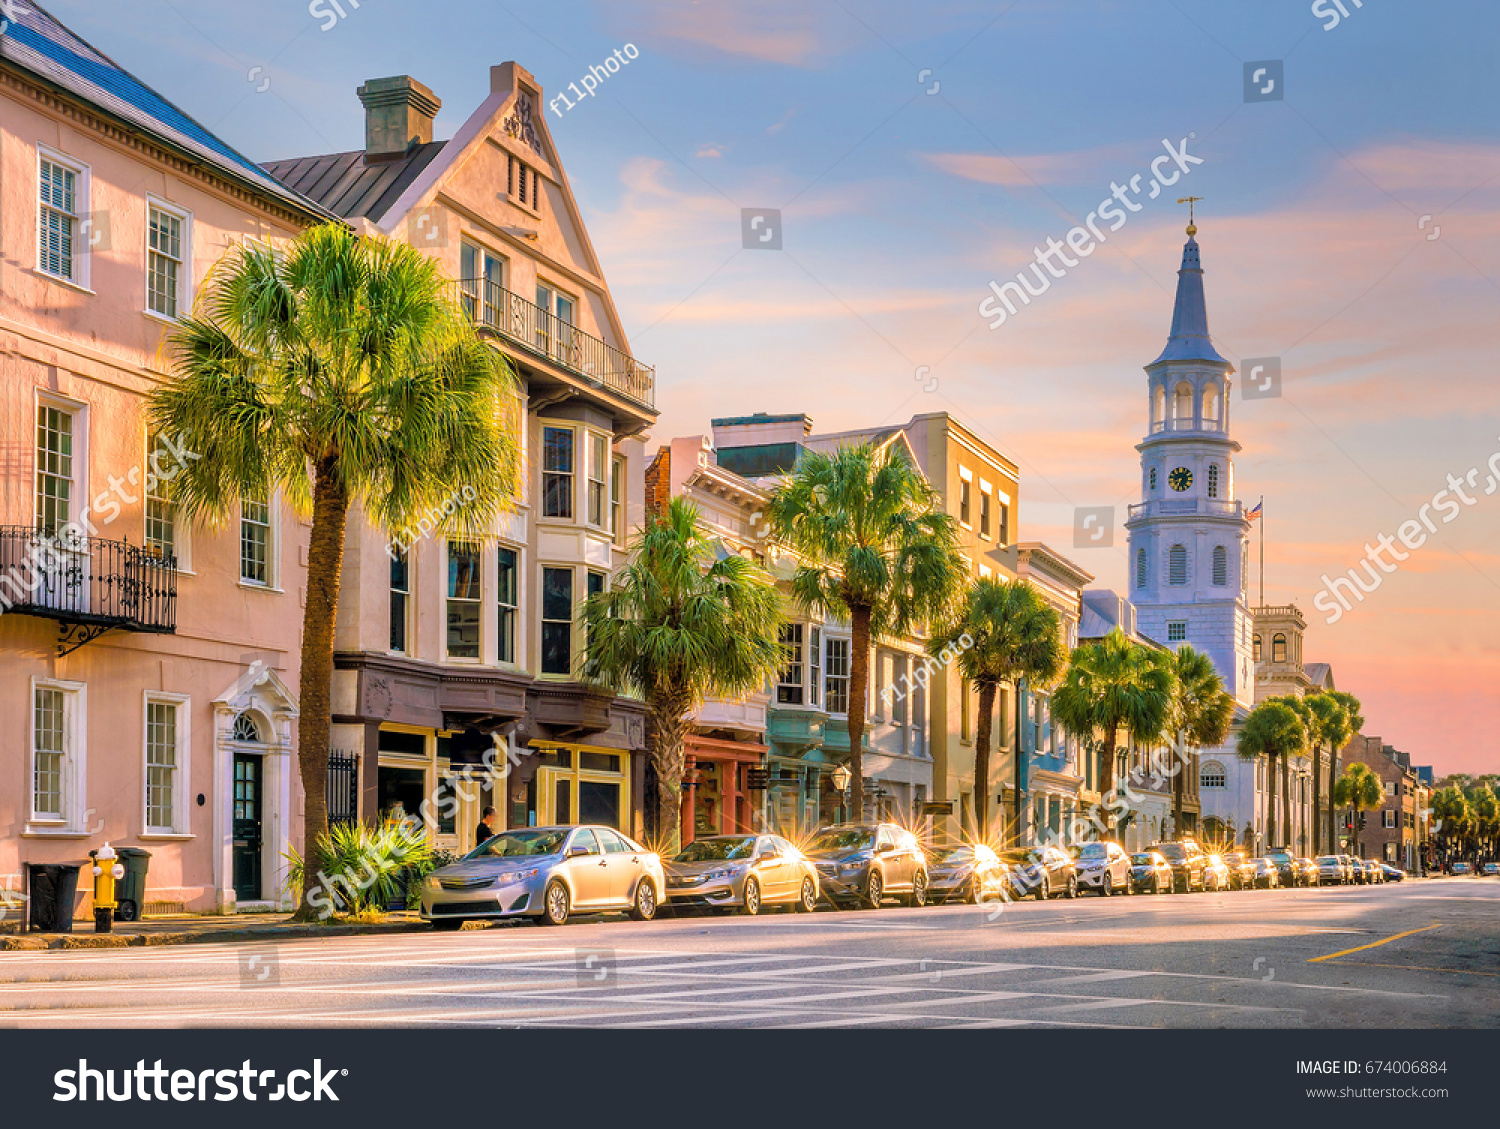 stock-photo-historical-downtown-area-of-charleston-south-carolina-usa-674006884